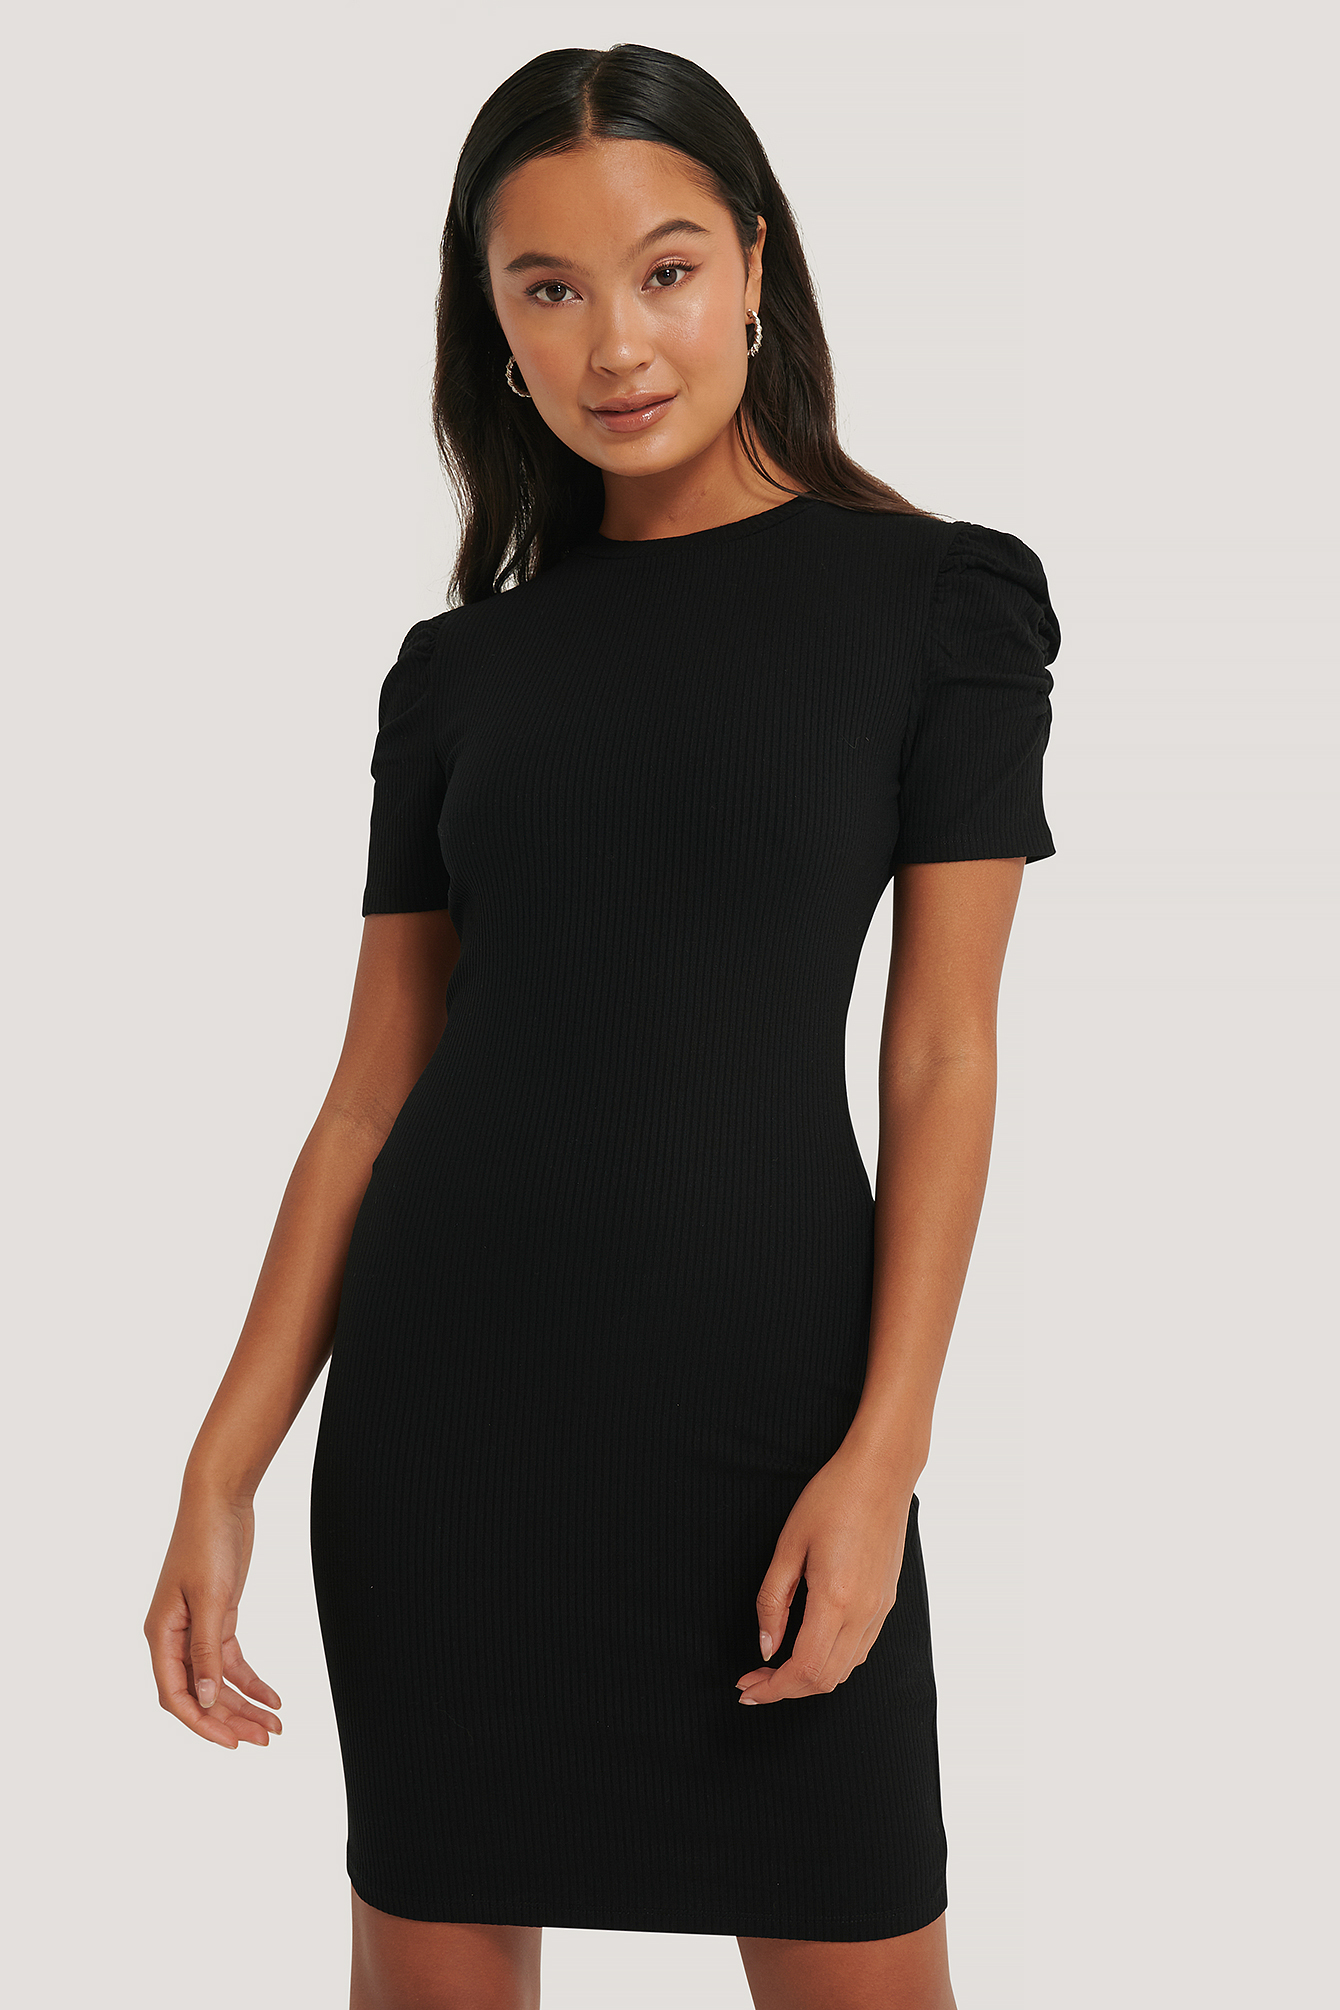 Black Puff Shoulder Short Sleeve Dress